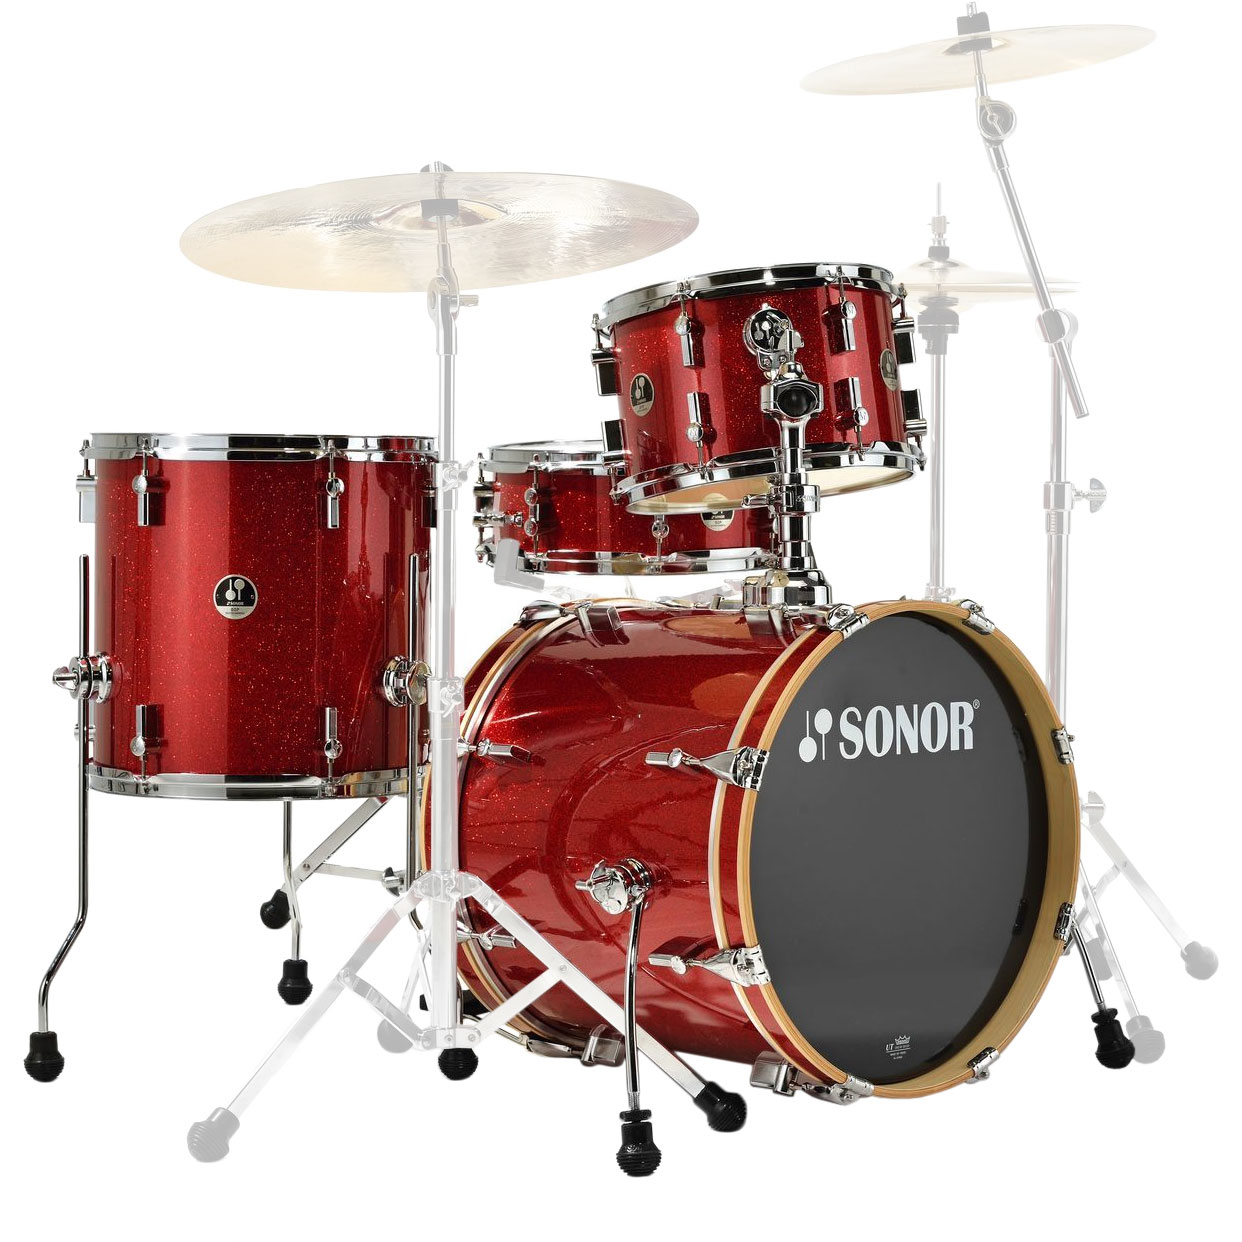 """Sonor Special Edition Bop 4-Piece Drum Set Shell Pack (18"""" Bass, 12/14"""" Toms, 14"""" Snare) in Red Galaxy Sparkle"""